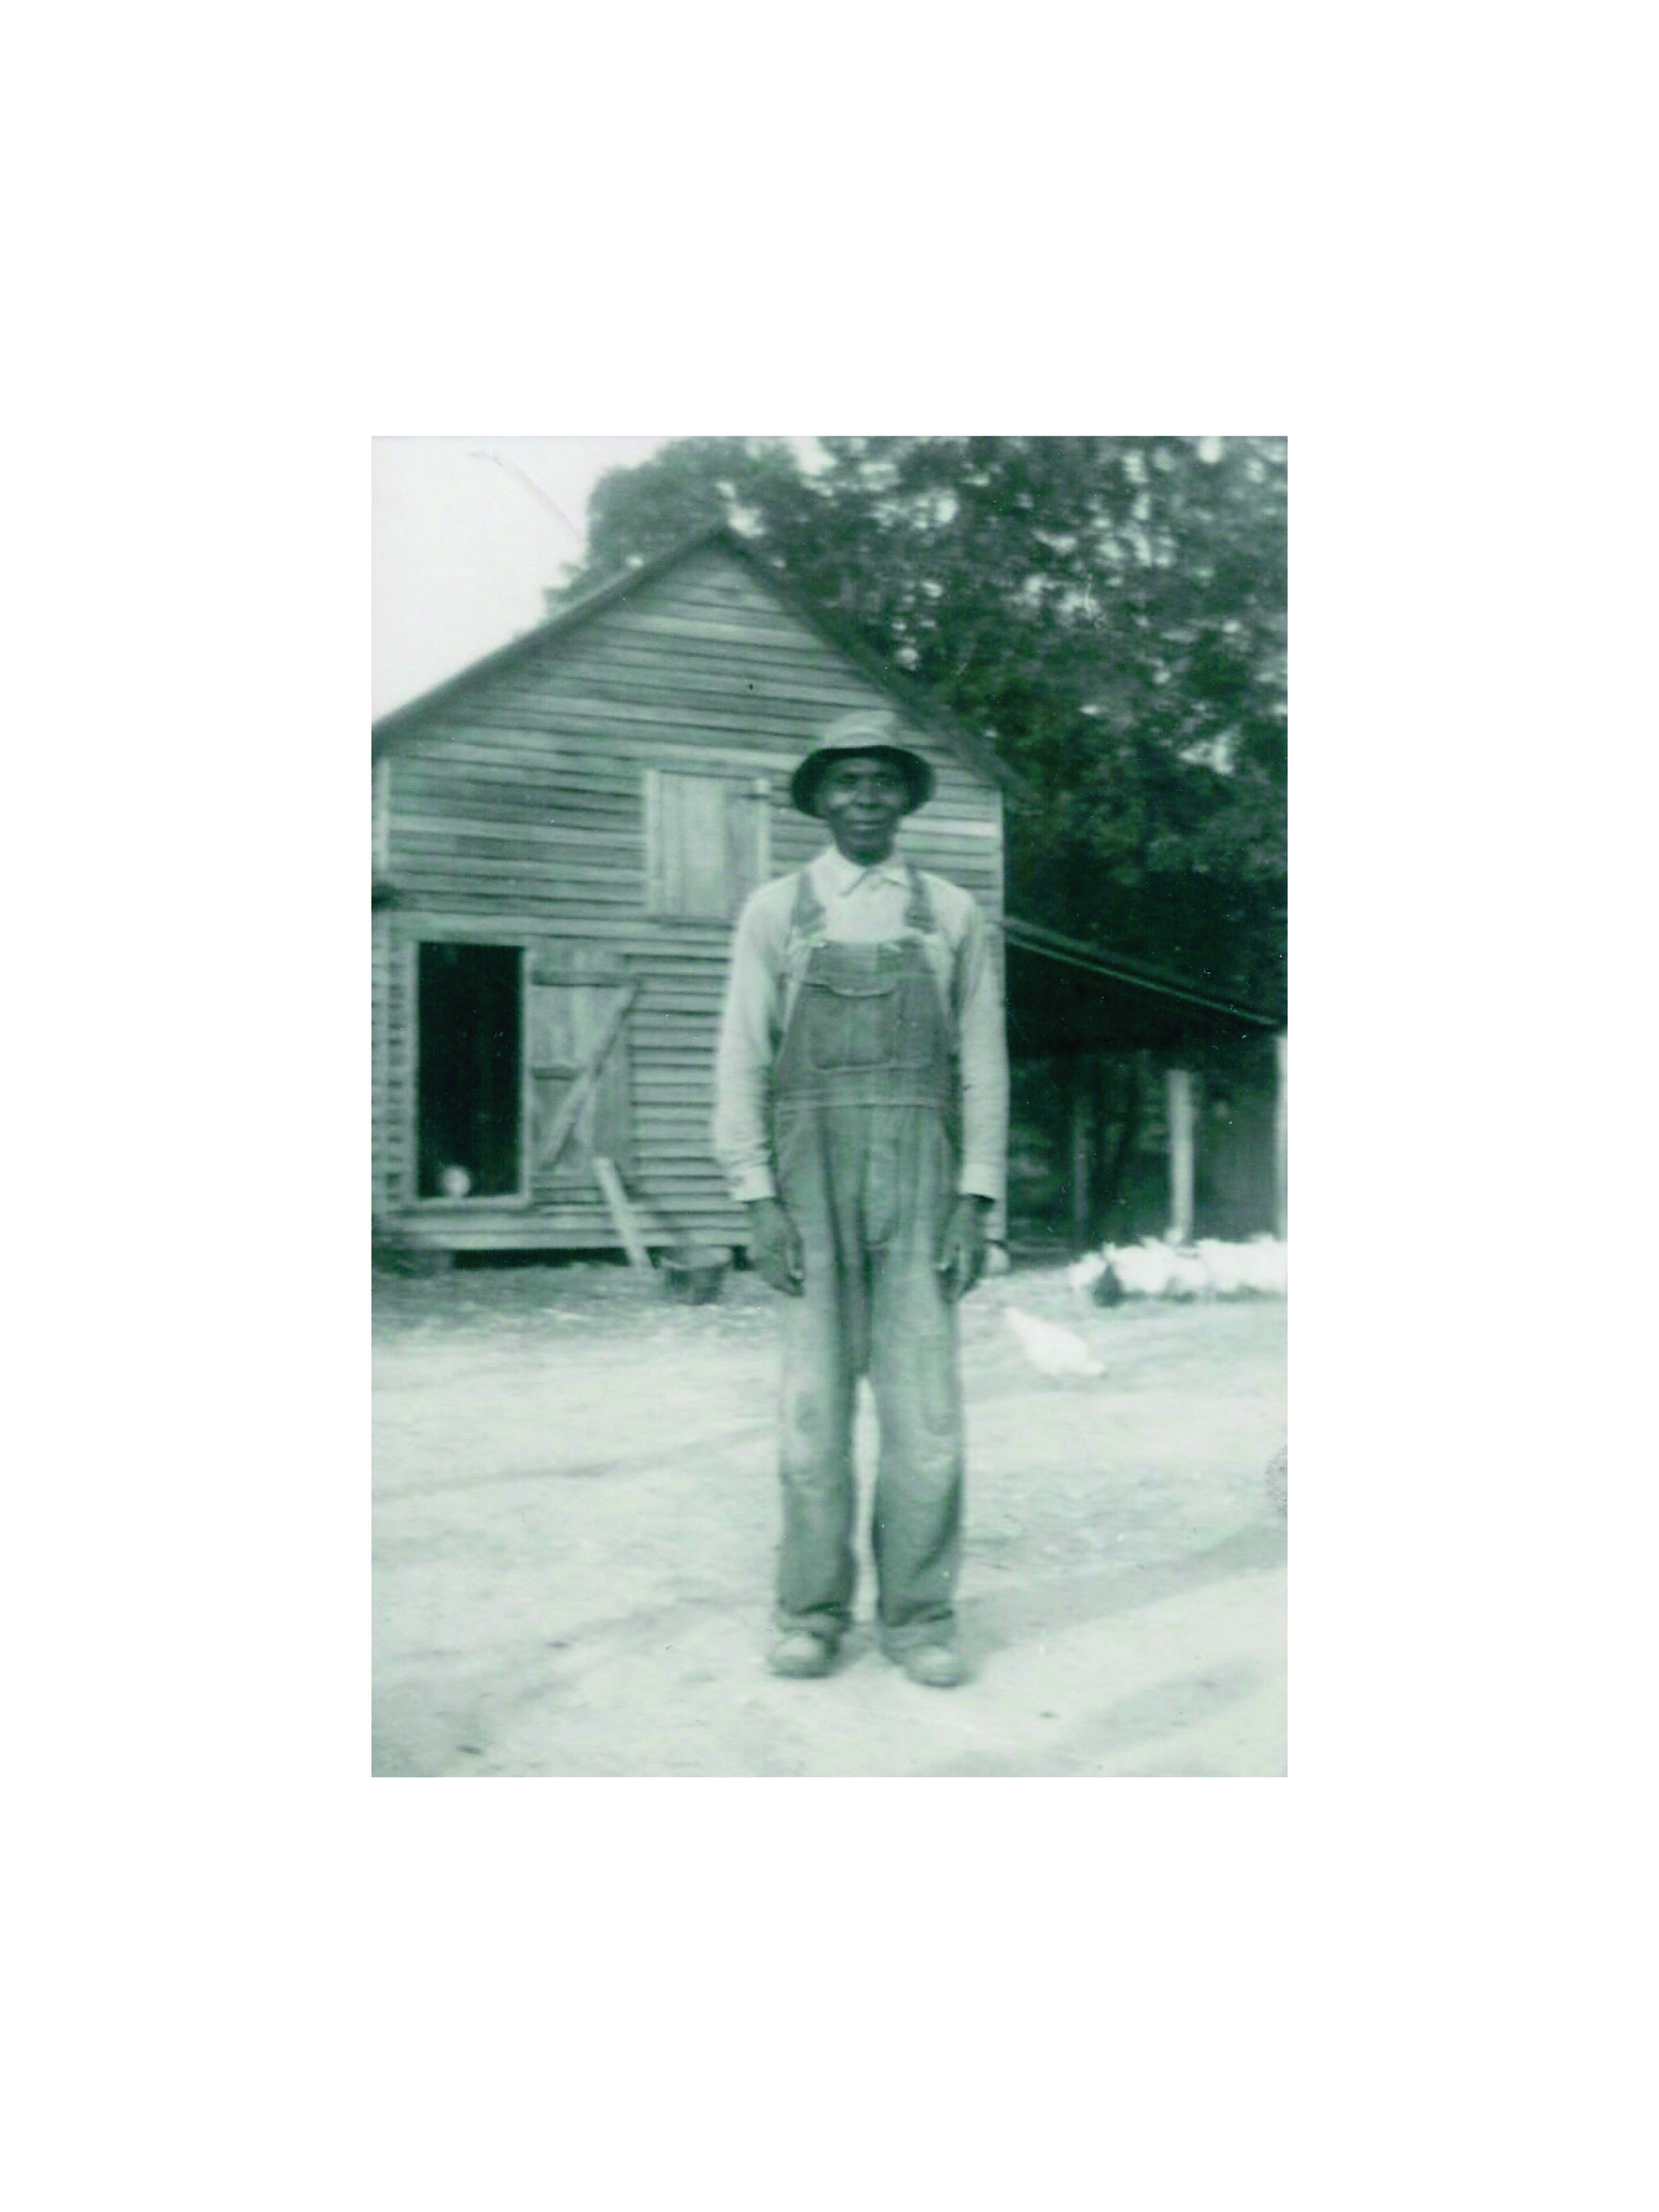 My Great Great Grandfather, in denim overalls, at his farm with his chickens.